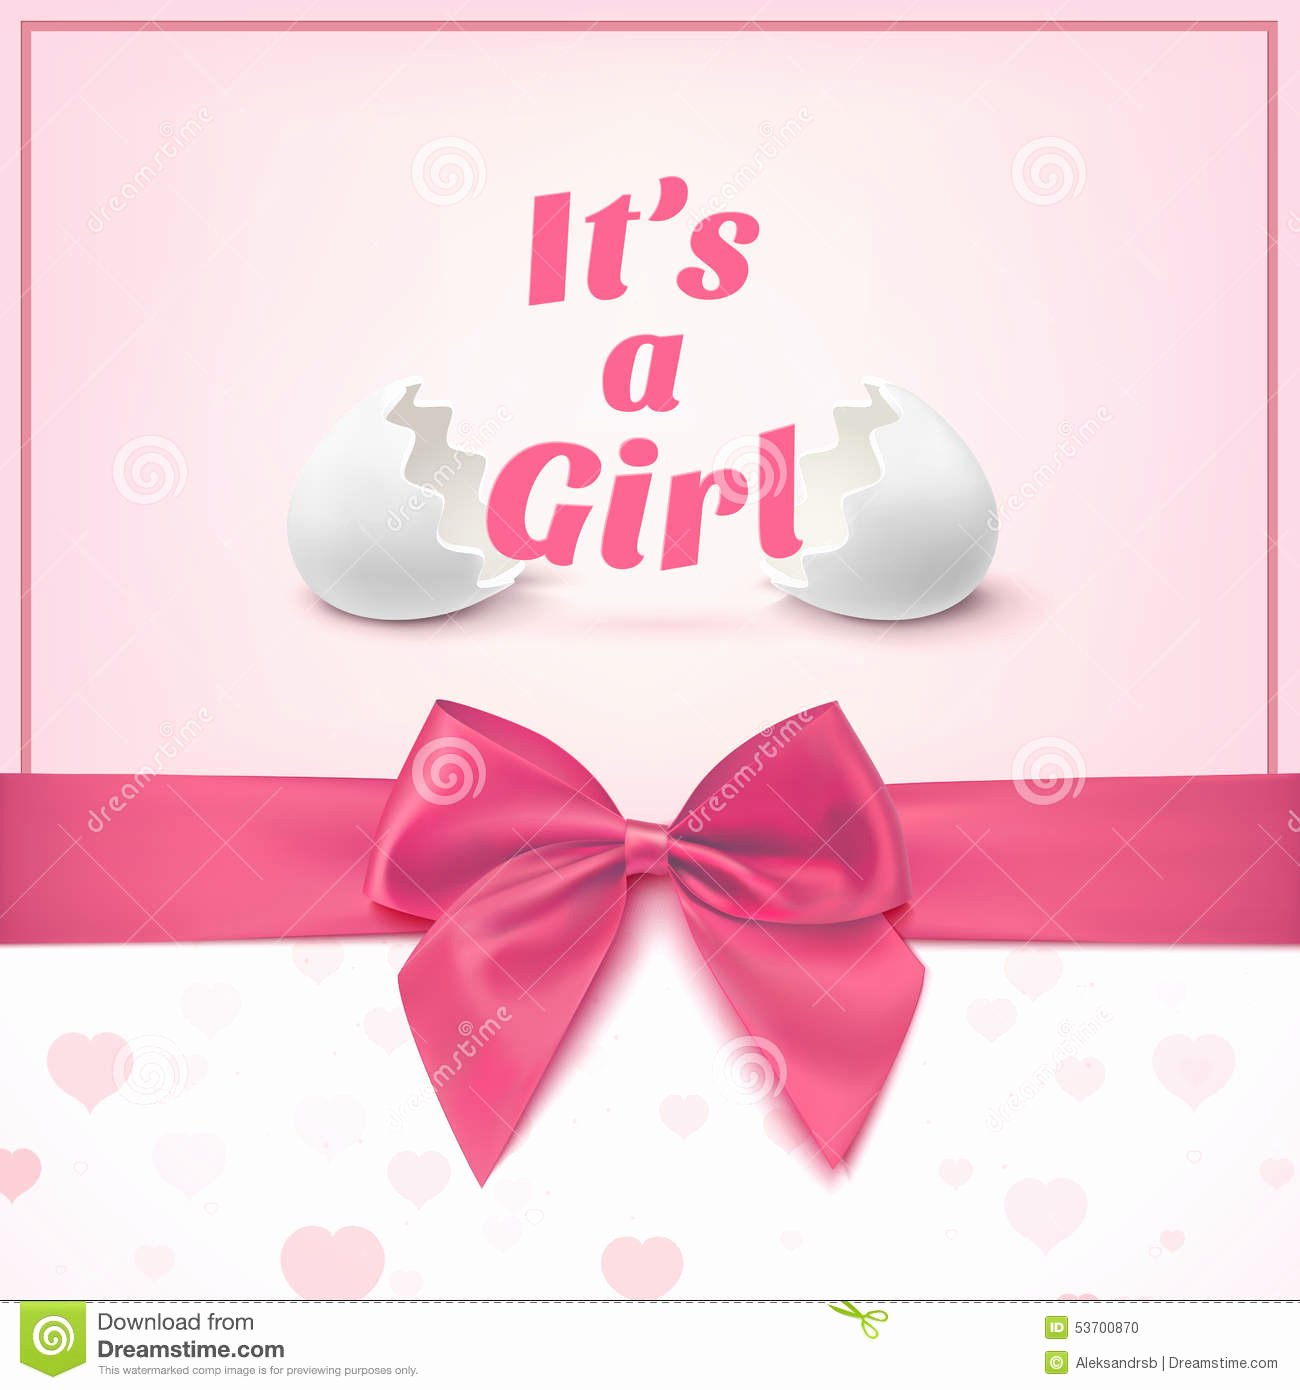 Baby Girl Announcement Template Elegant Its A Girl Template for Baby Shower Celebration Stock